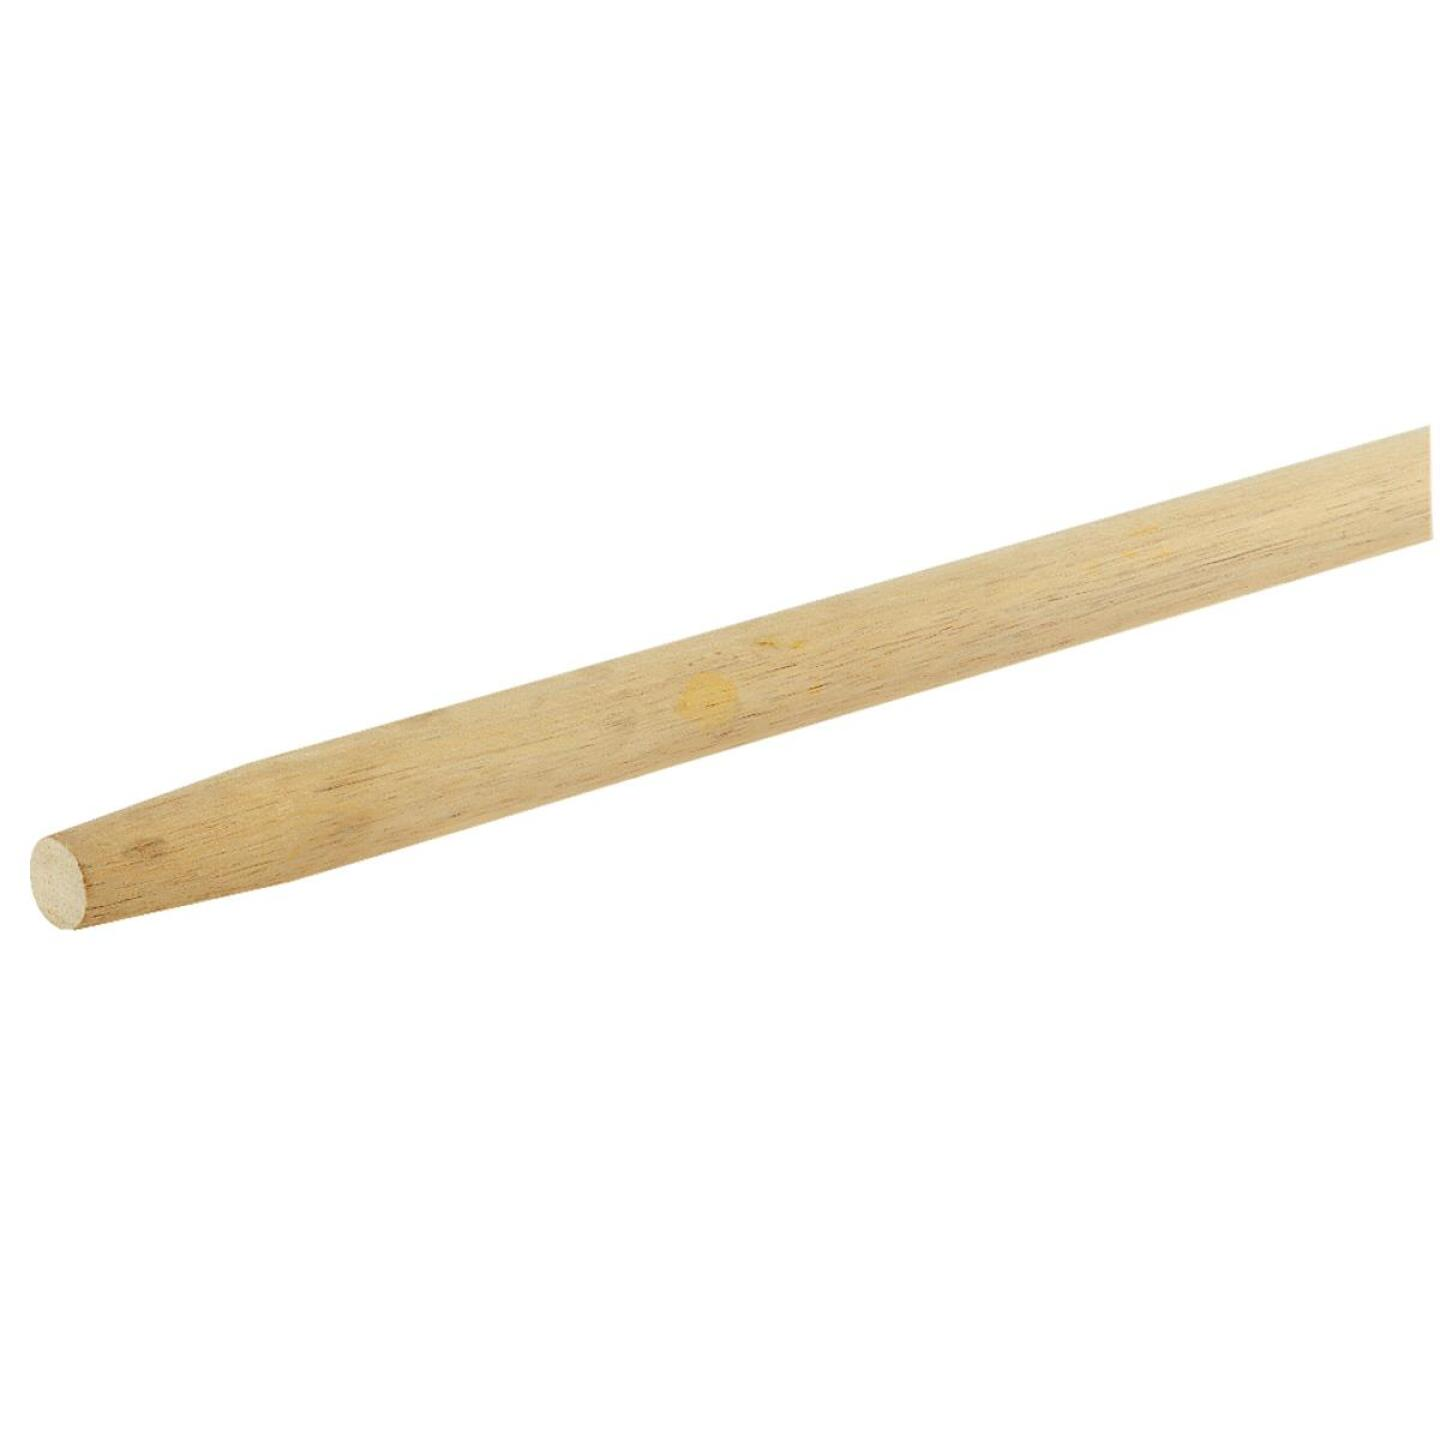 Waddell 48 In. Wood Tapered Broom Handle Image 1